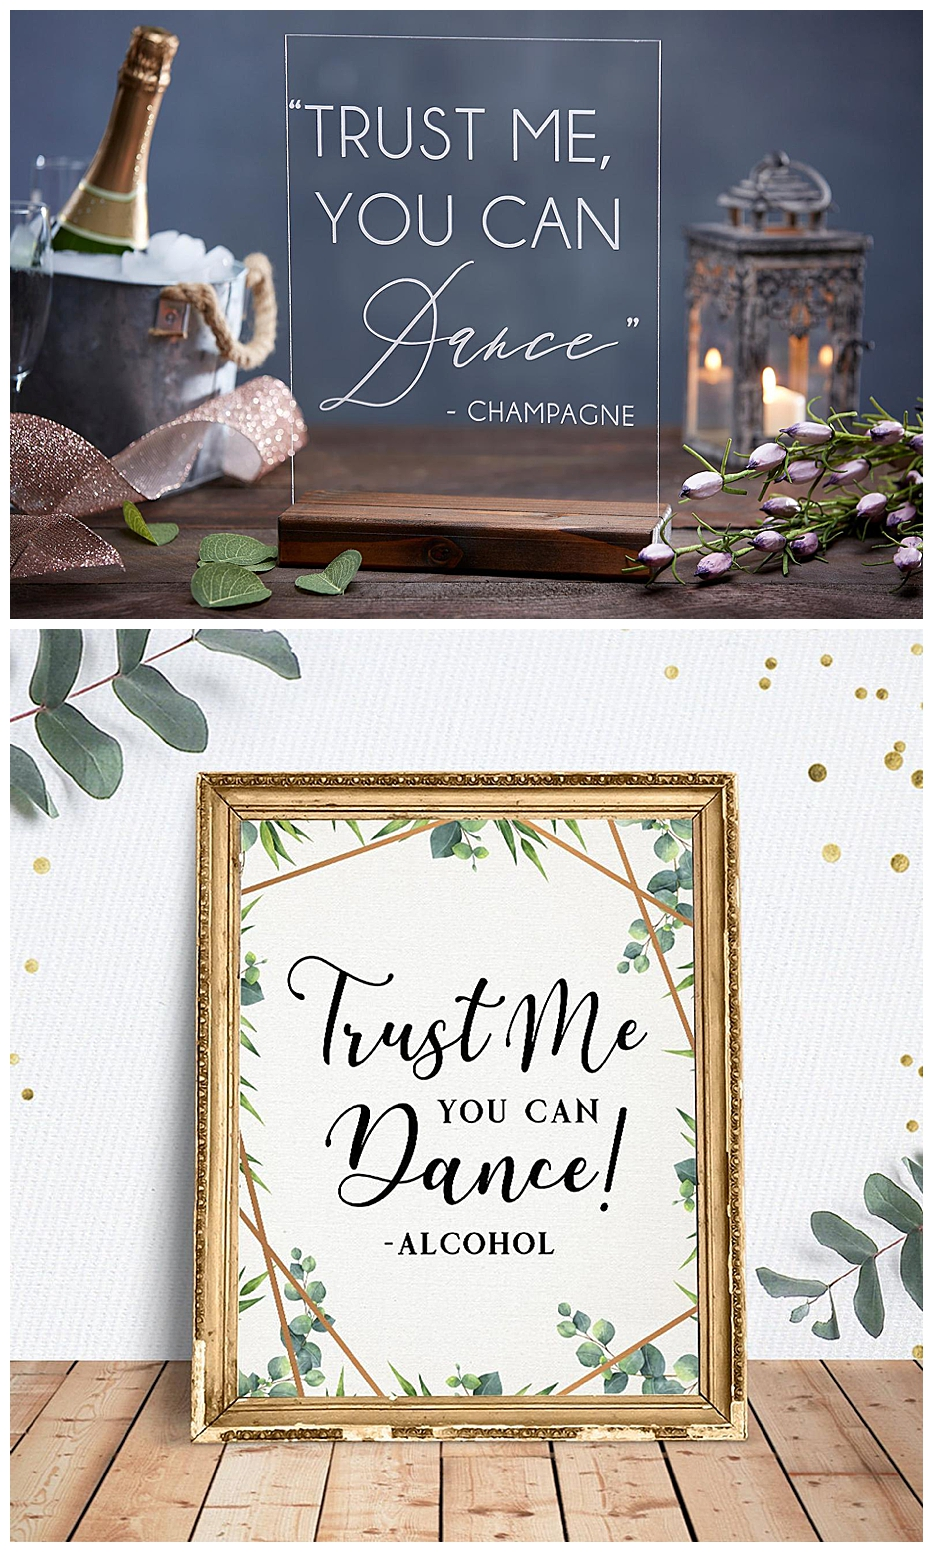 trust-me-you-can-dance-signage